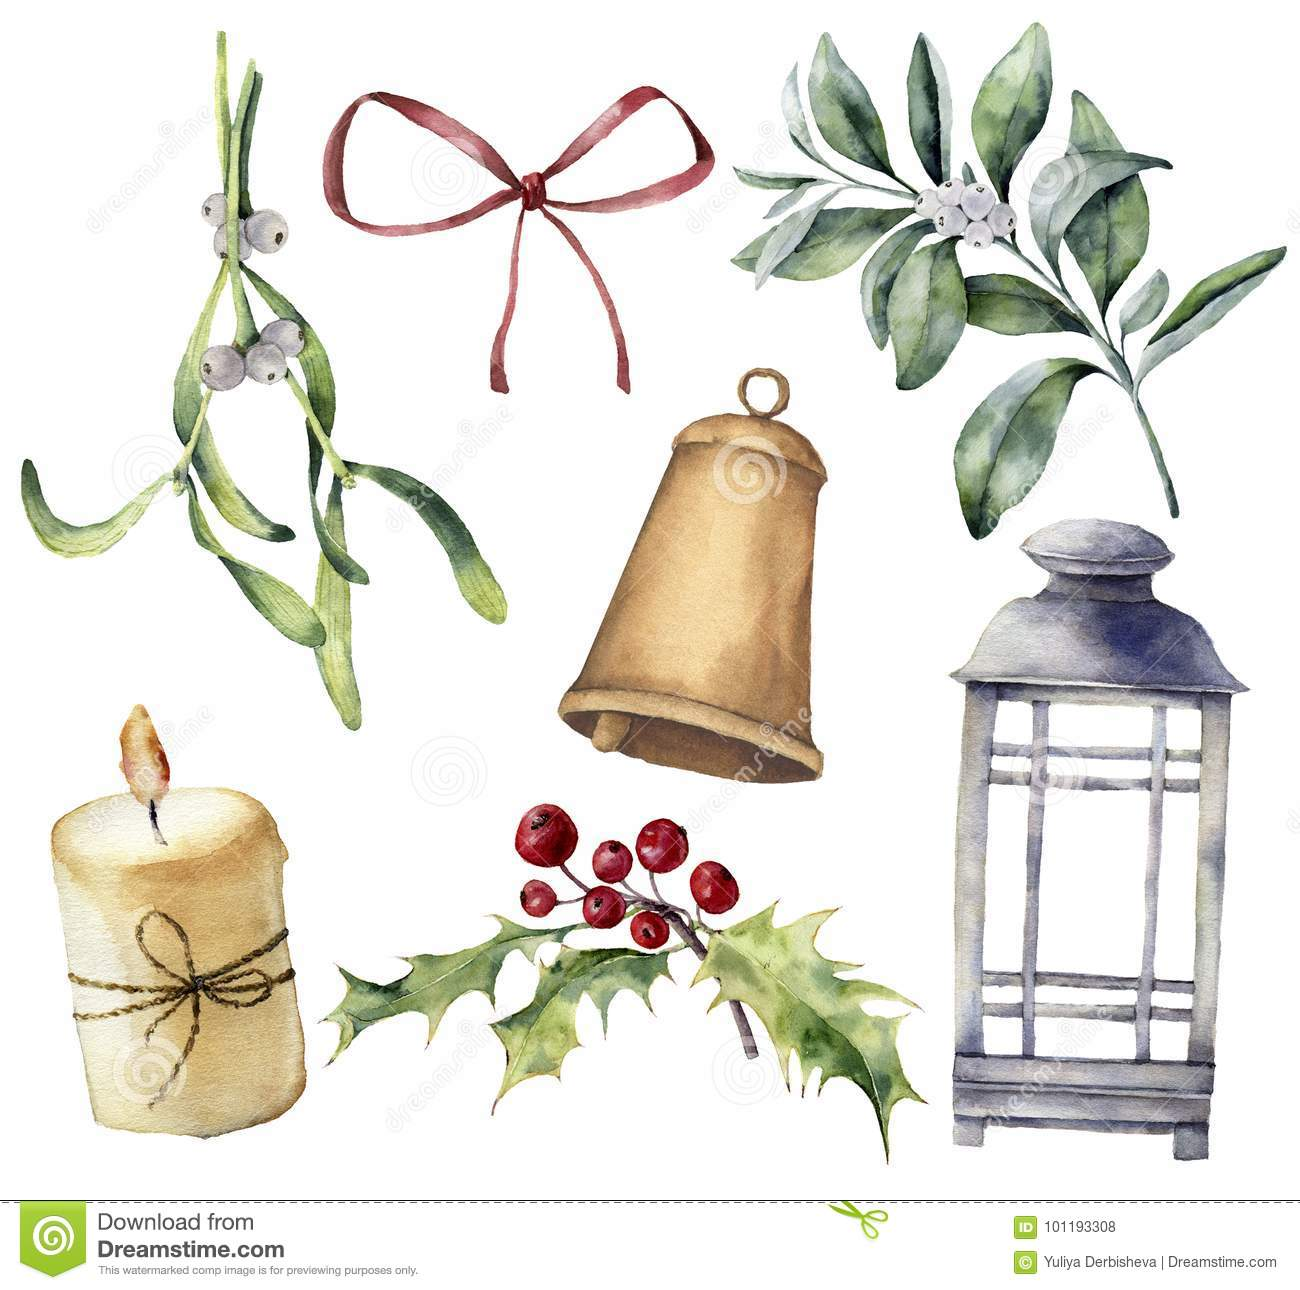 Watercolor Christmas Candles Clipart Merry Christmas Design Holiday Decoration Art Illustration Bells Hand Painted Floral Composition